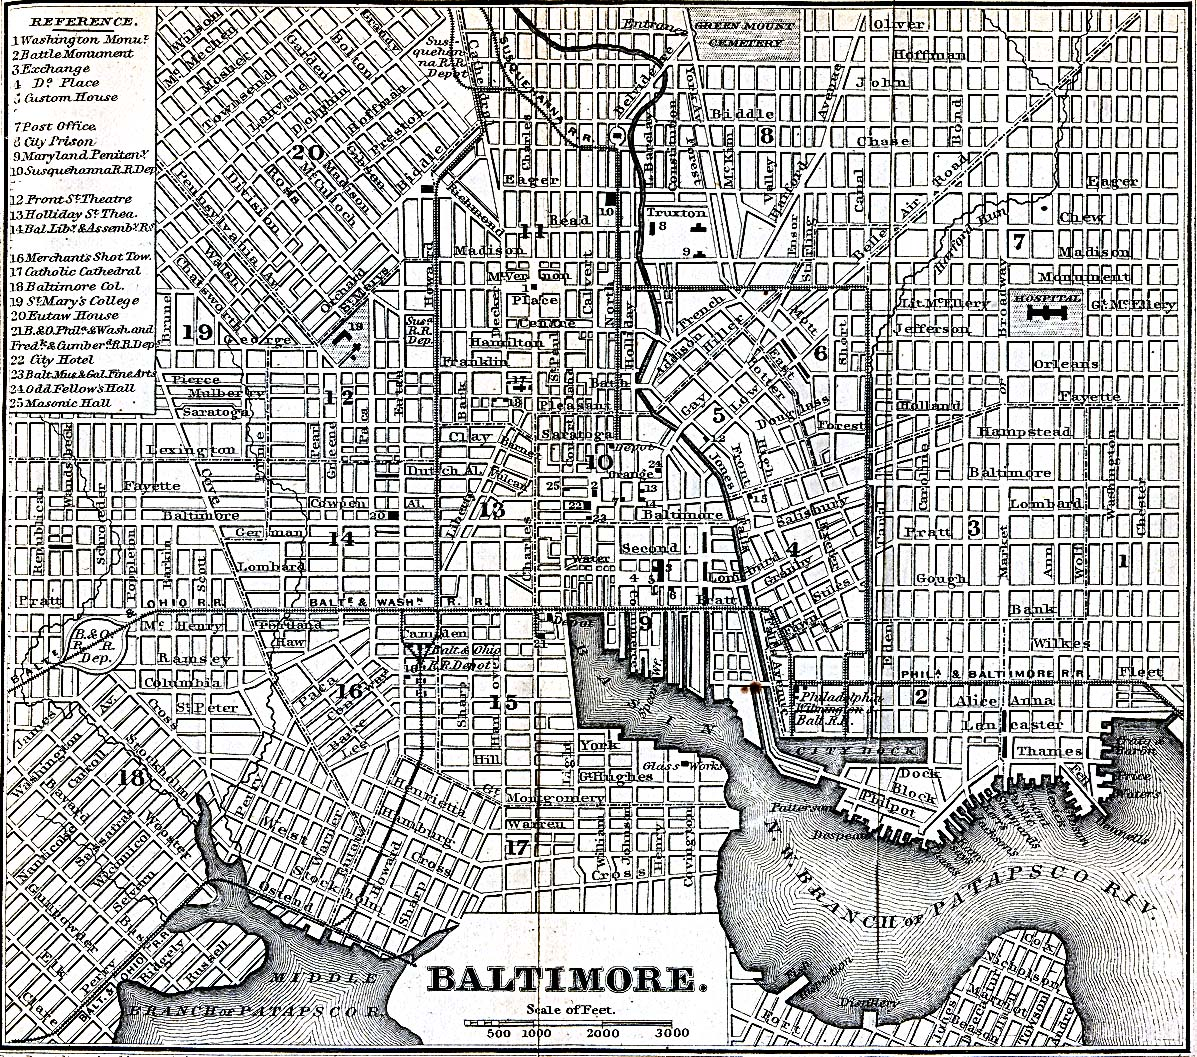 Vintage map of Baltimore